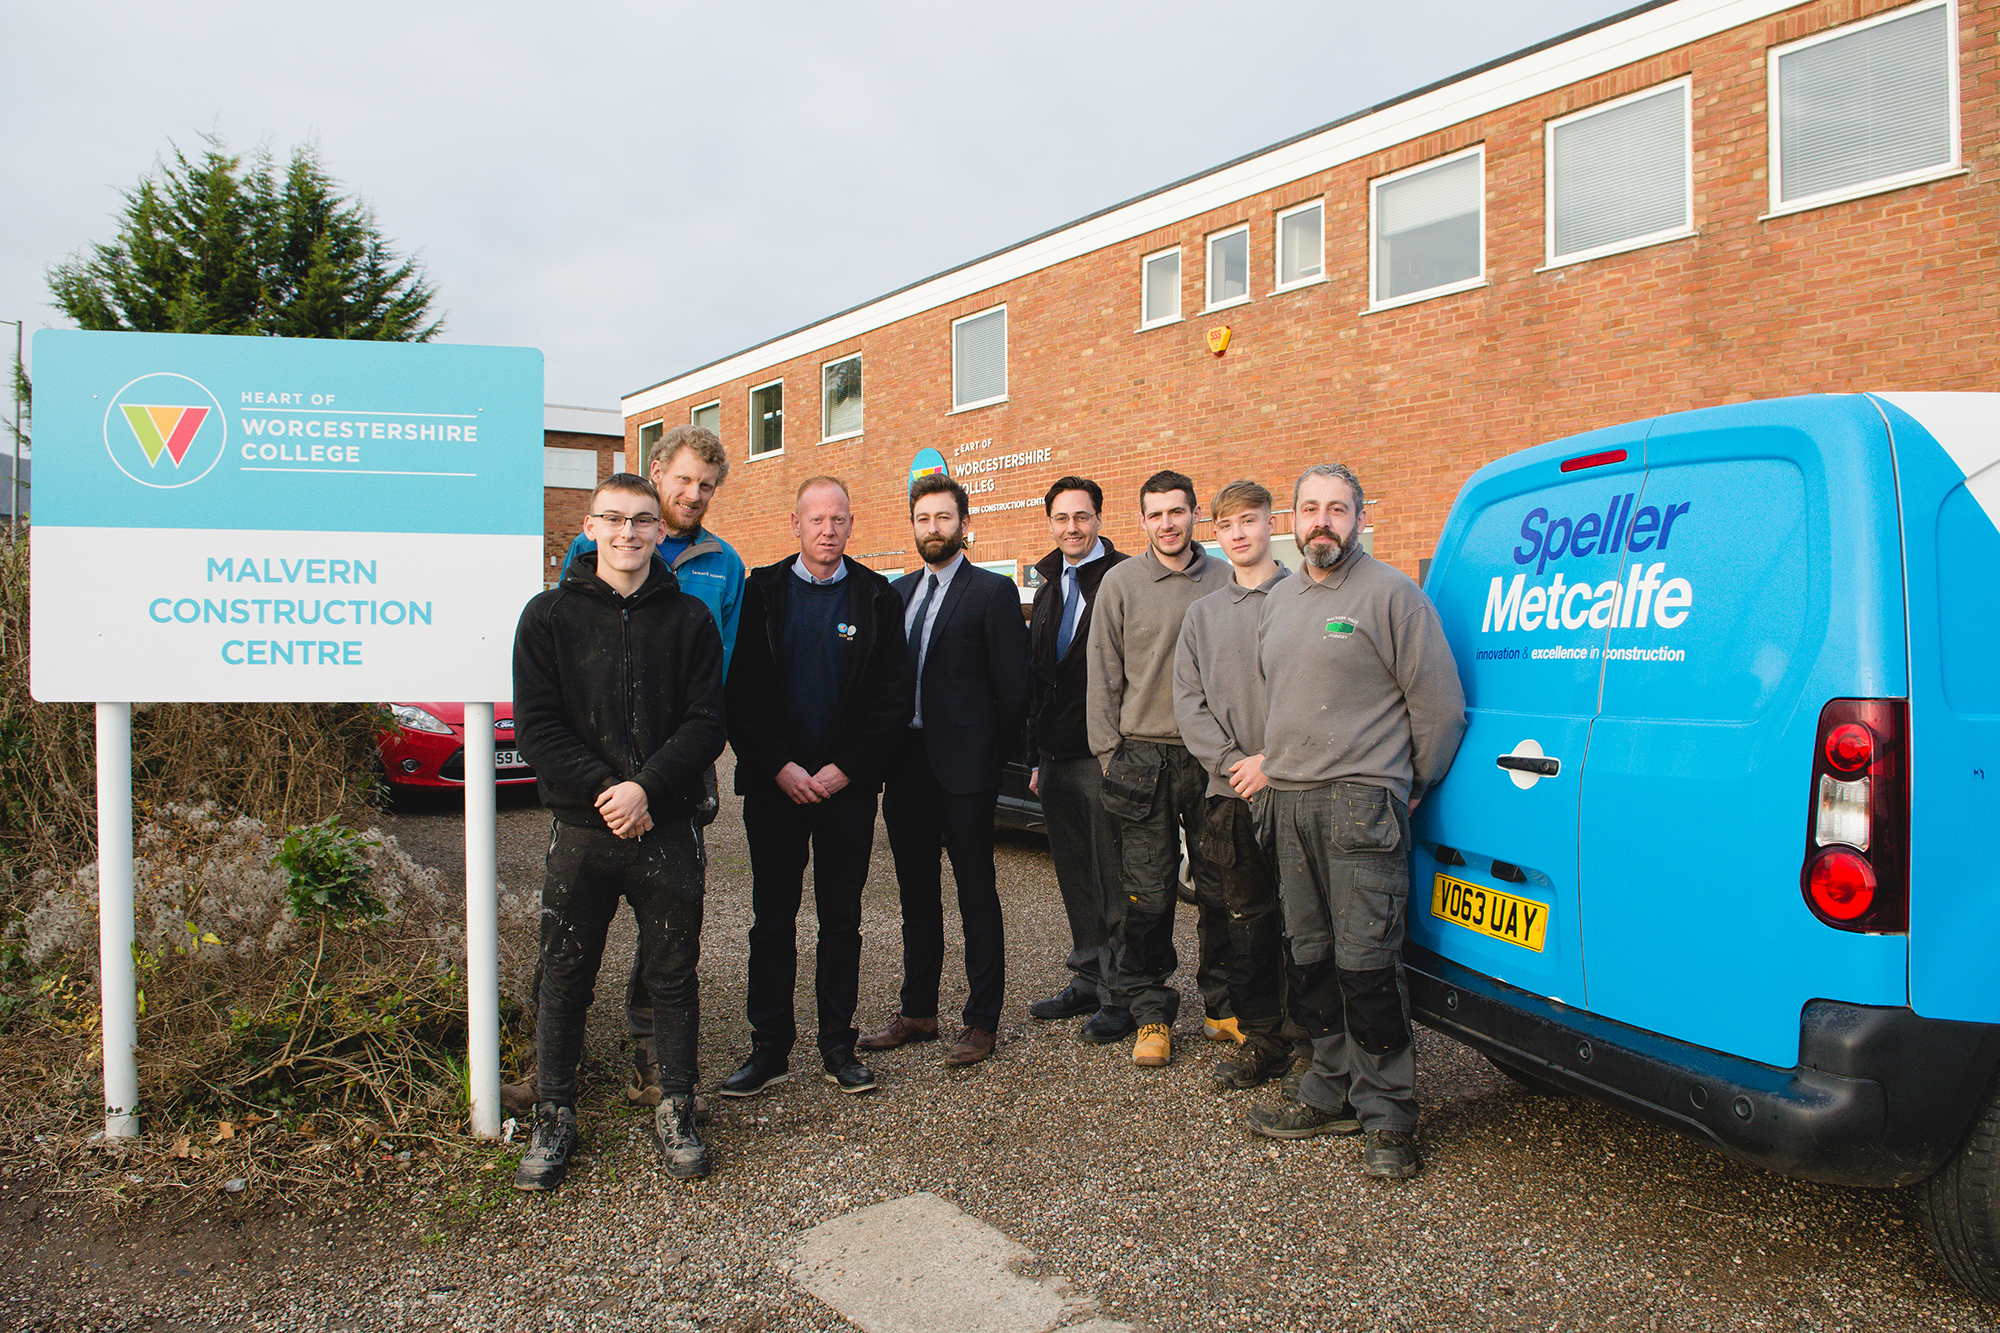 2018 apprentices and their employers join Travis Perkins, Speller Metcalfe and the Heart of Worcestershire College